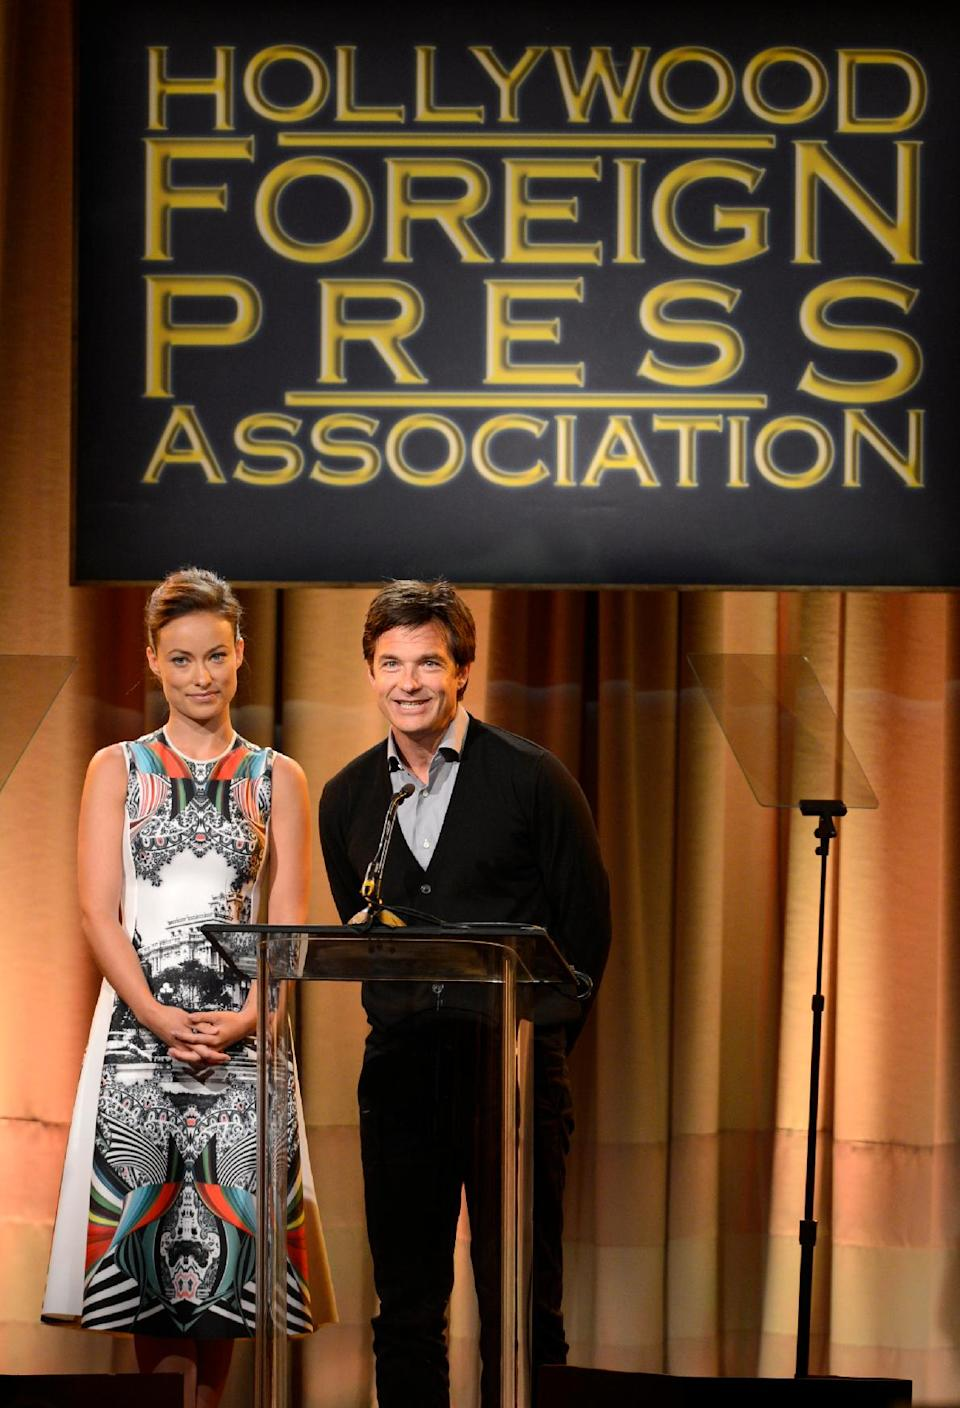 Olivia Wilde, left, and Jason Bateman speak on stage at the Hollywood Foreign Press Association Luncheon at the Beverly Hilton Hotel on Tuesday, Aug. 13, 2013, in Beverly Hills, Calif. (Photo by Chris Pizzello/Invision/AP)